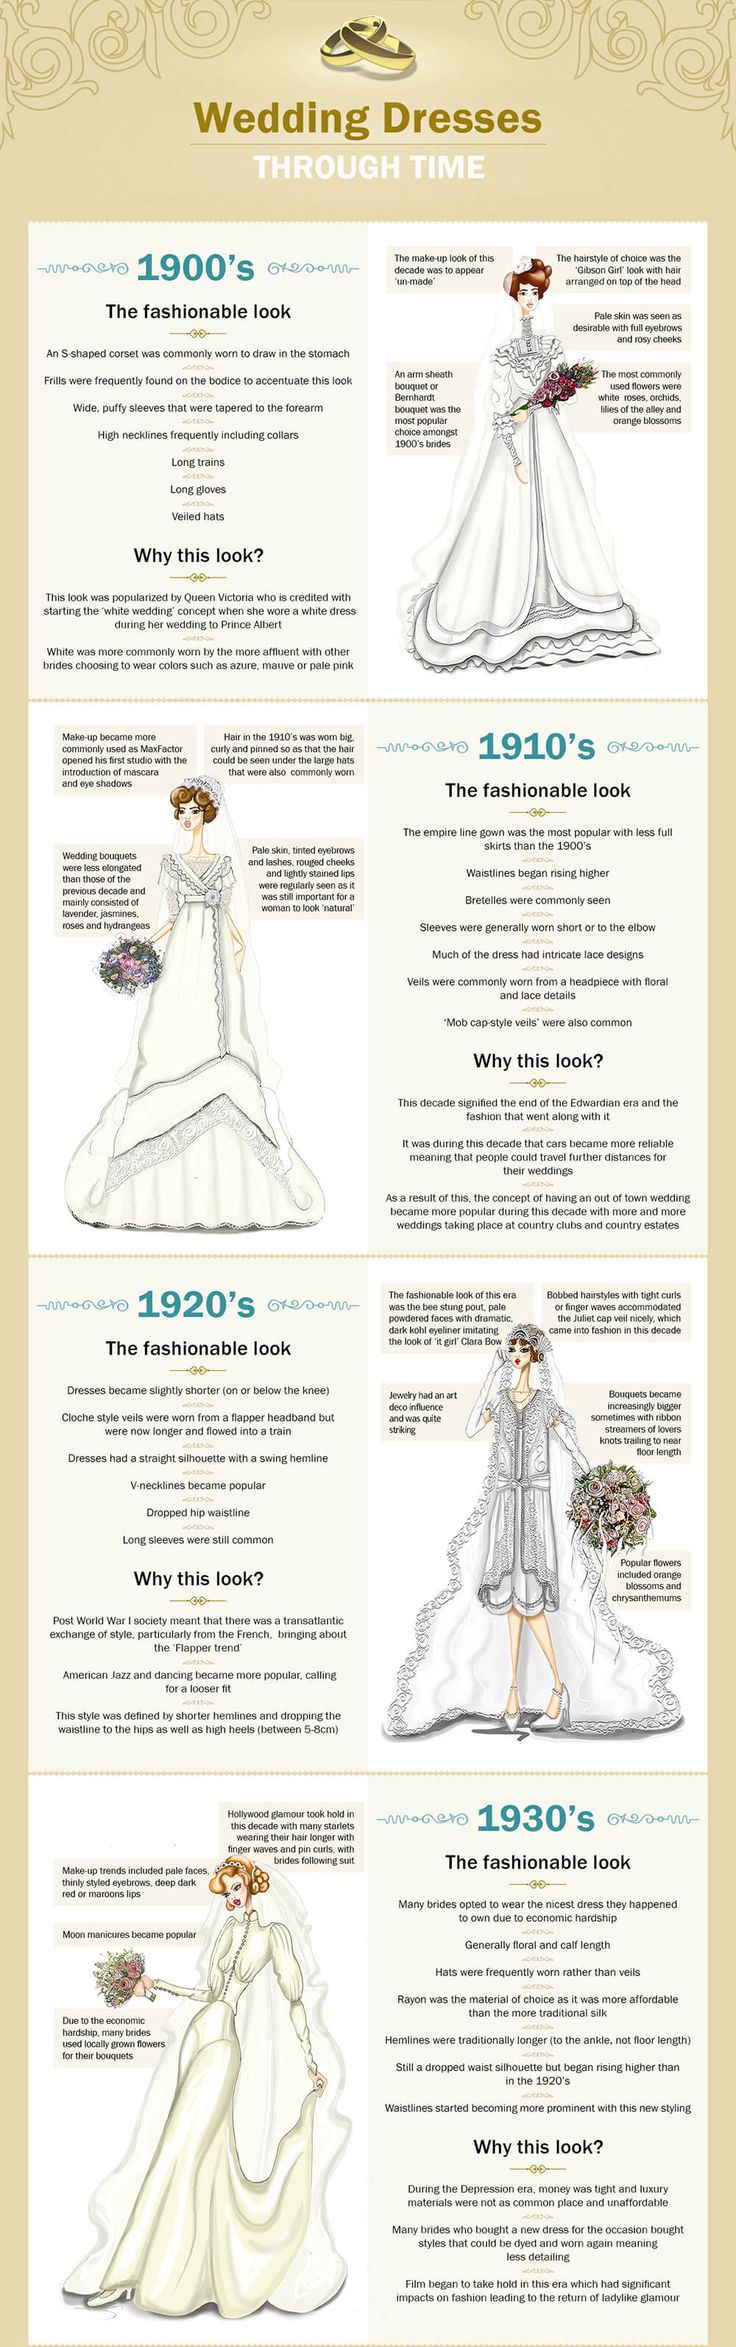 Wedding Dresses Through Time  [by Fairmont Hotels & Resorts -- via #tipsographic]. More wedding tips at tipsographic.com